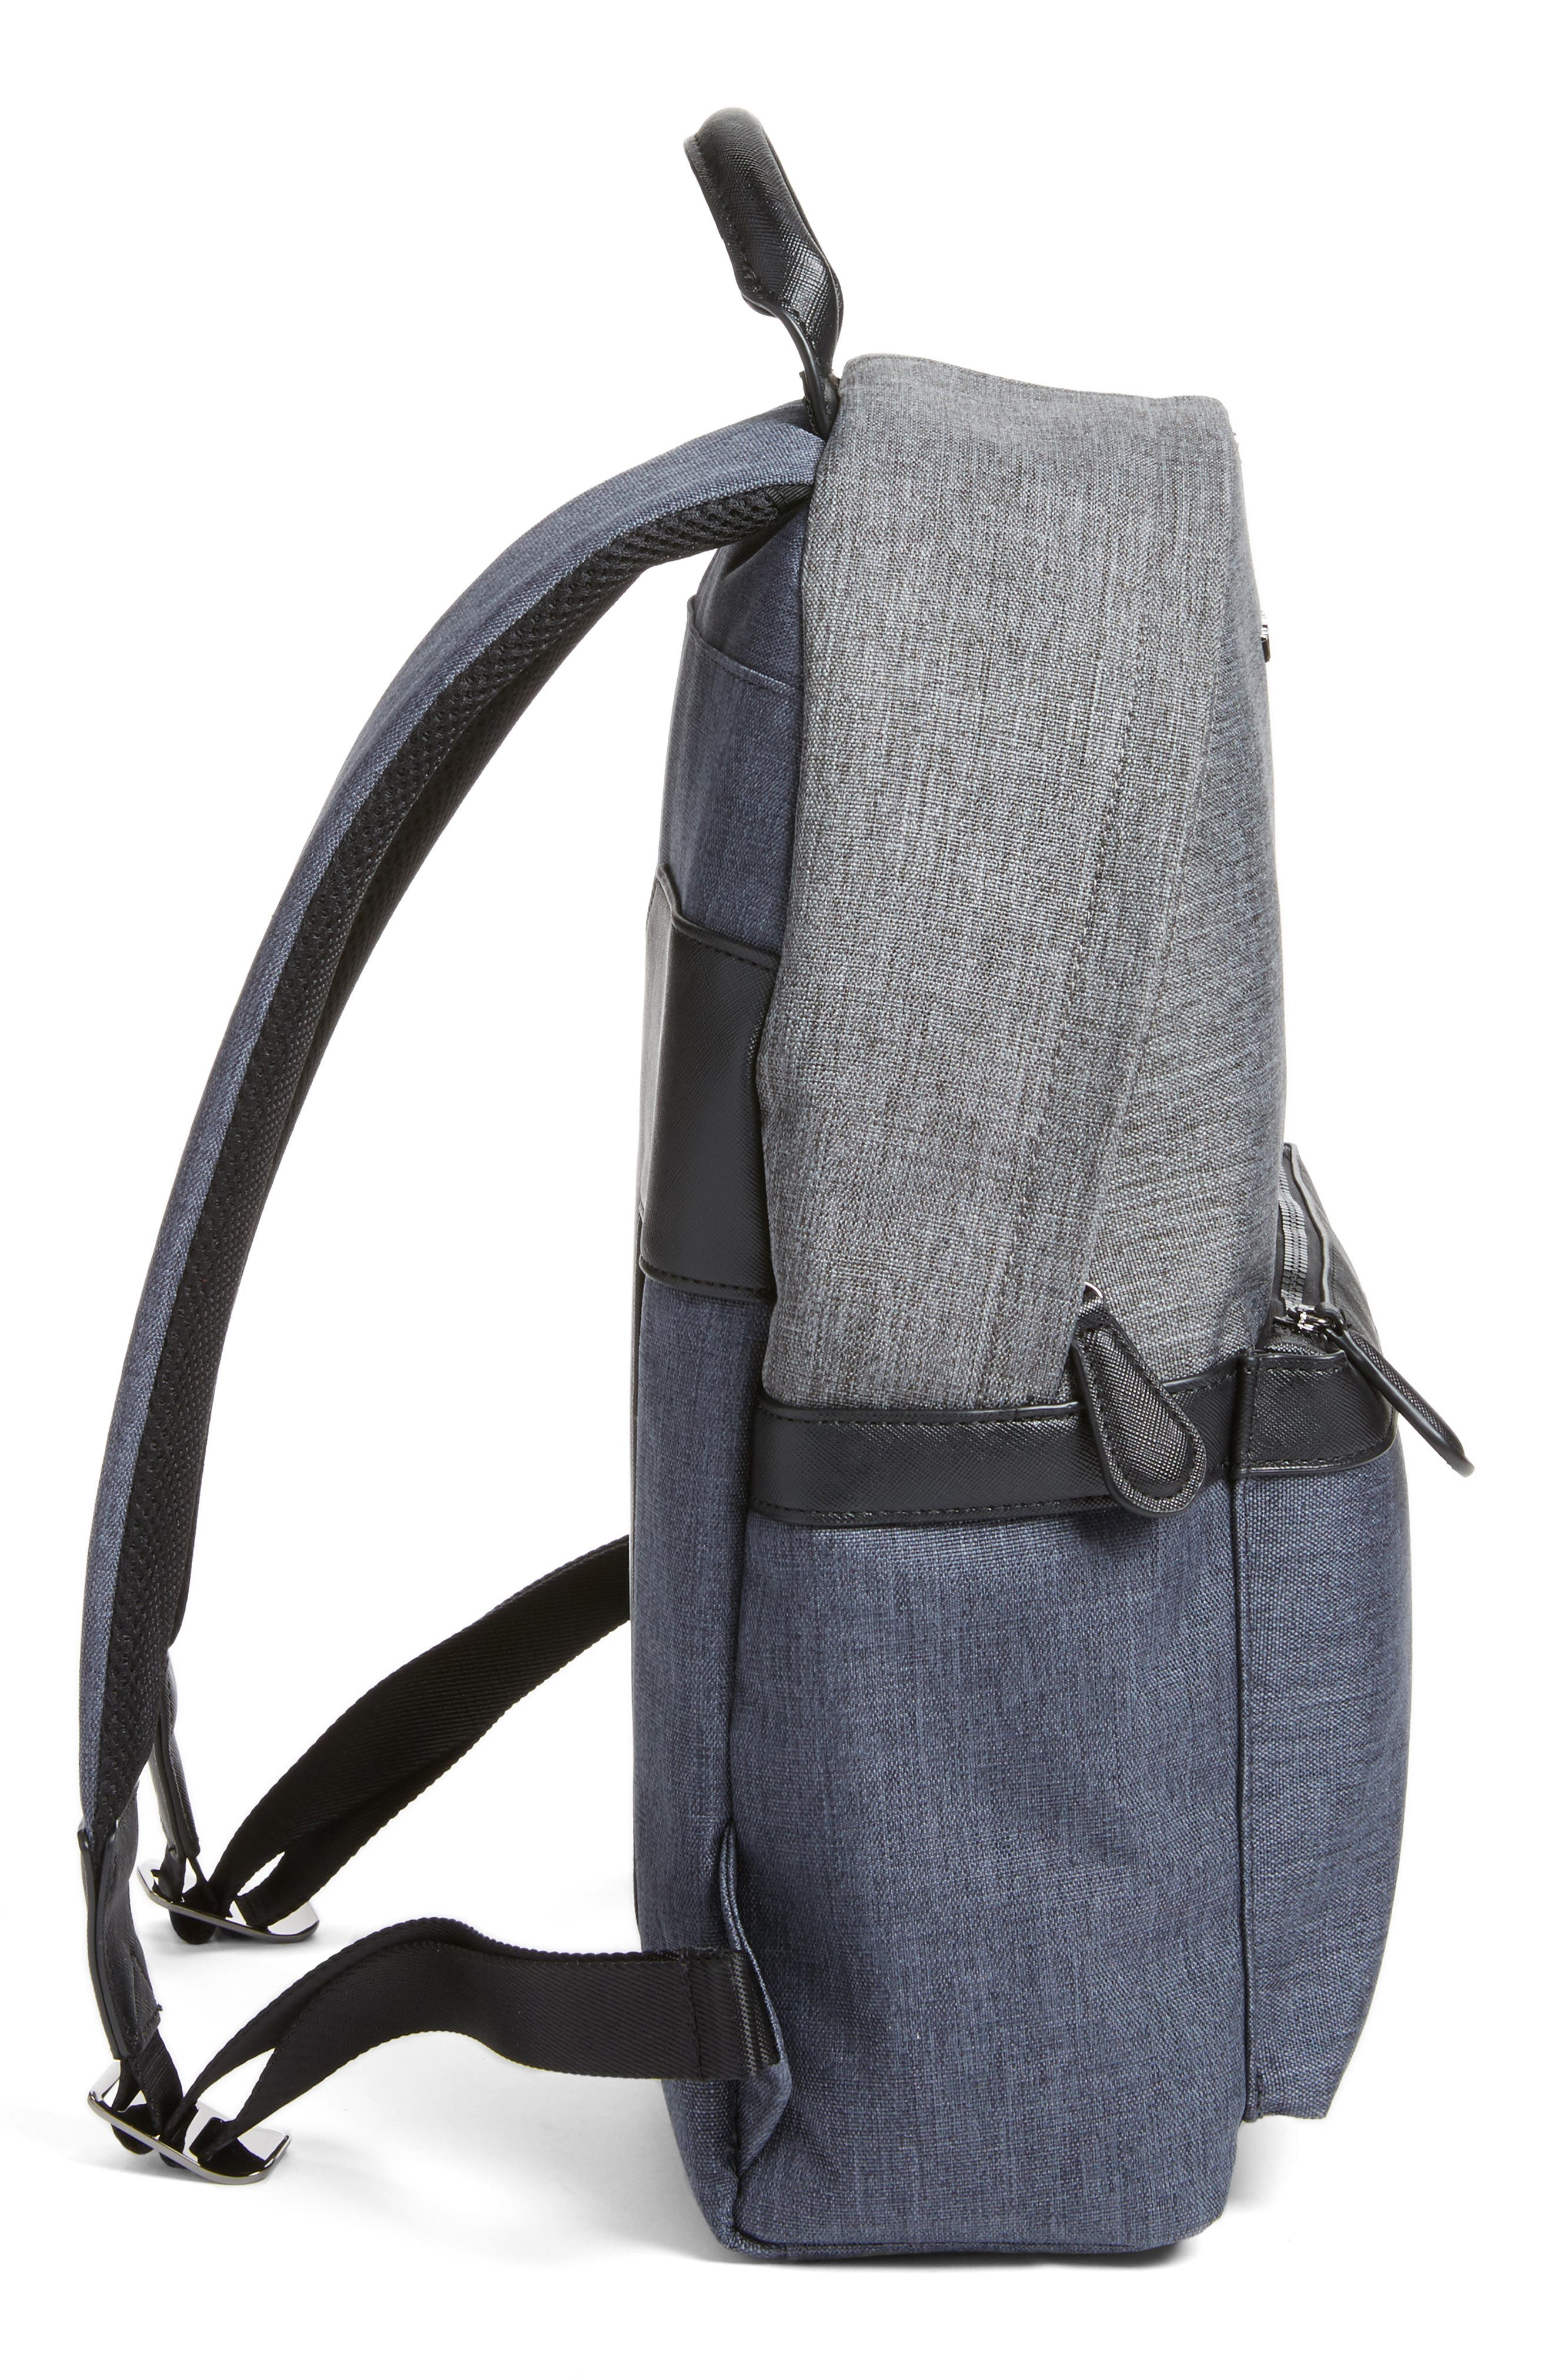 Stingra Backpack,                             Alternate thumbnail 5, color,                             010